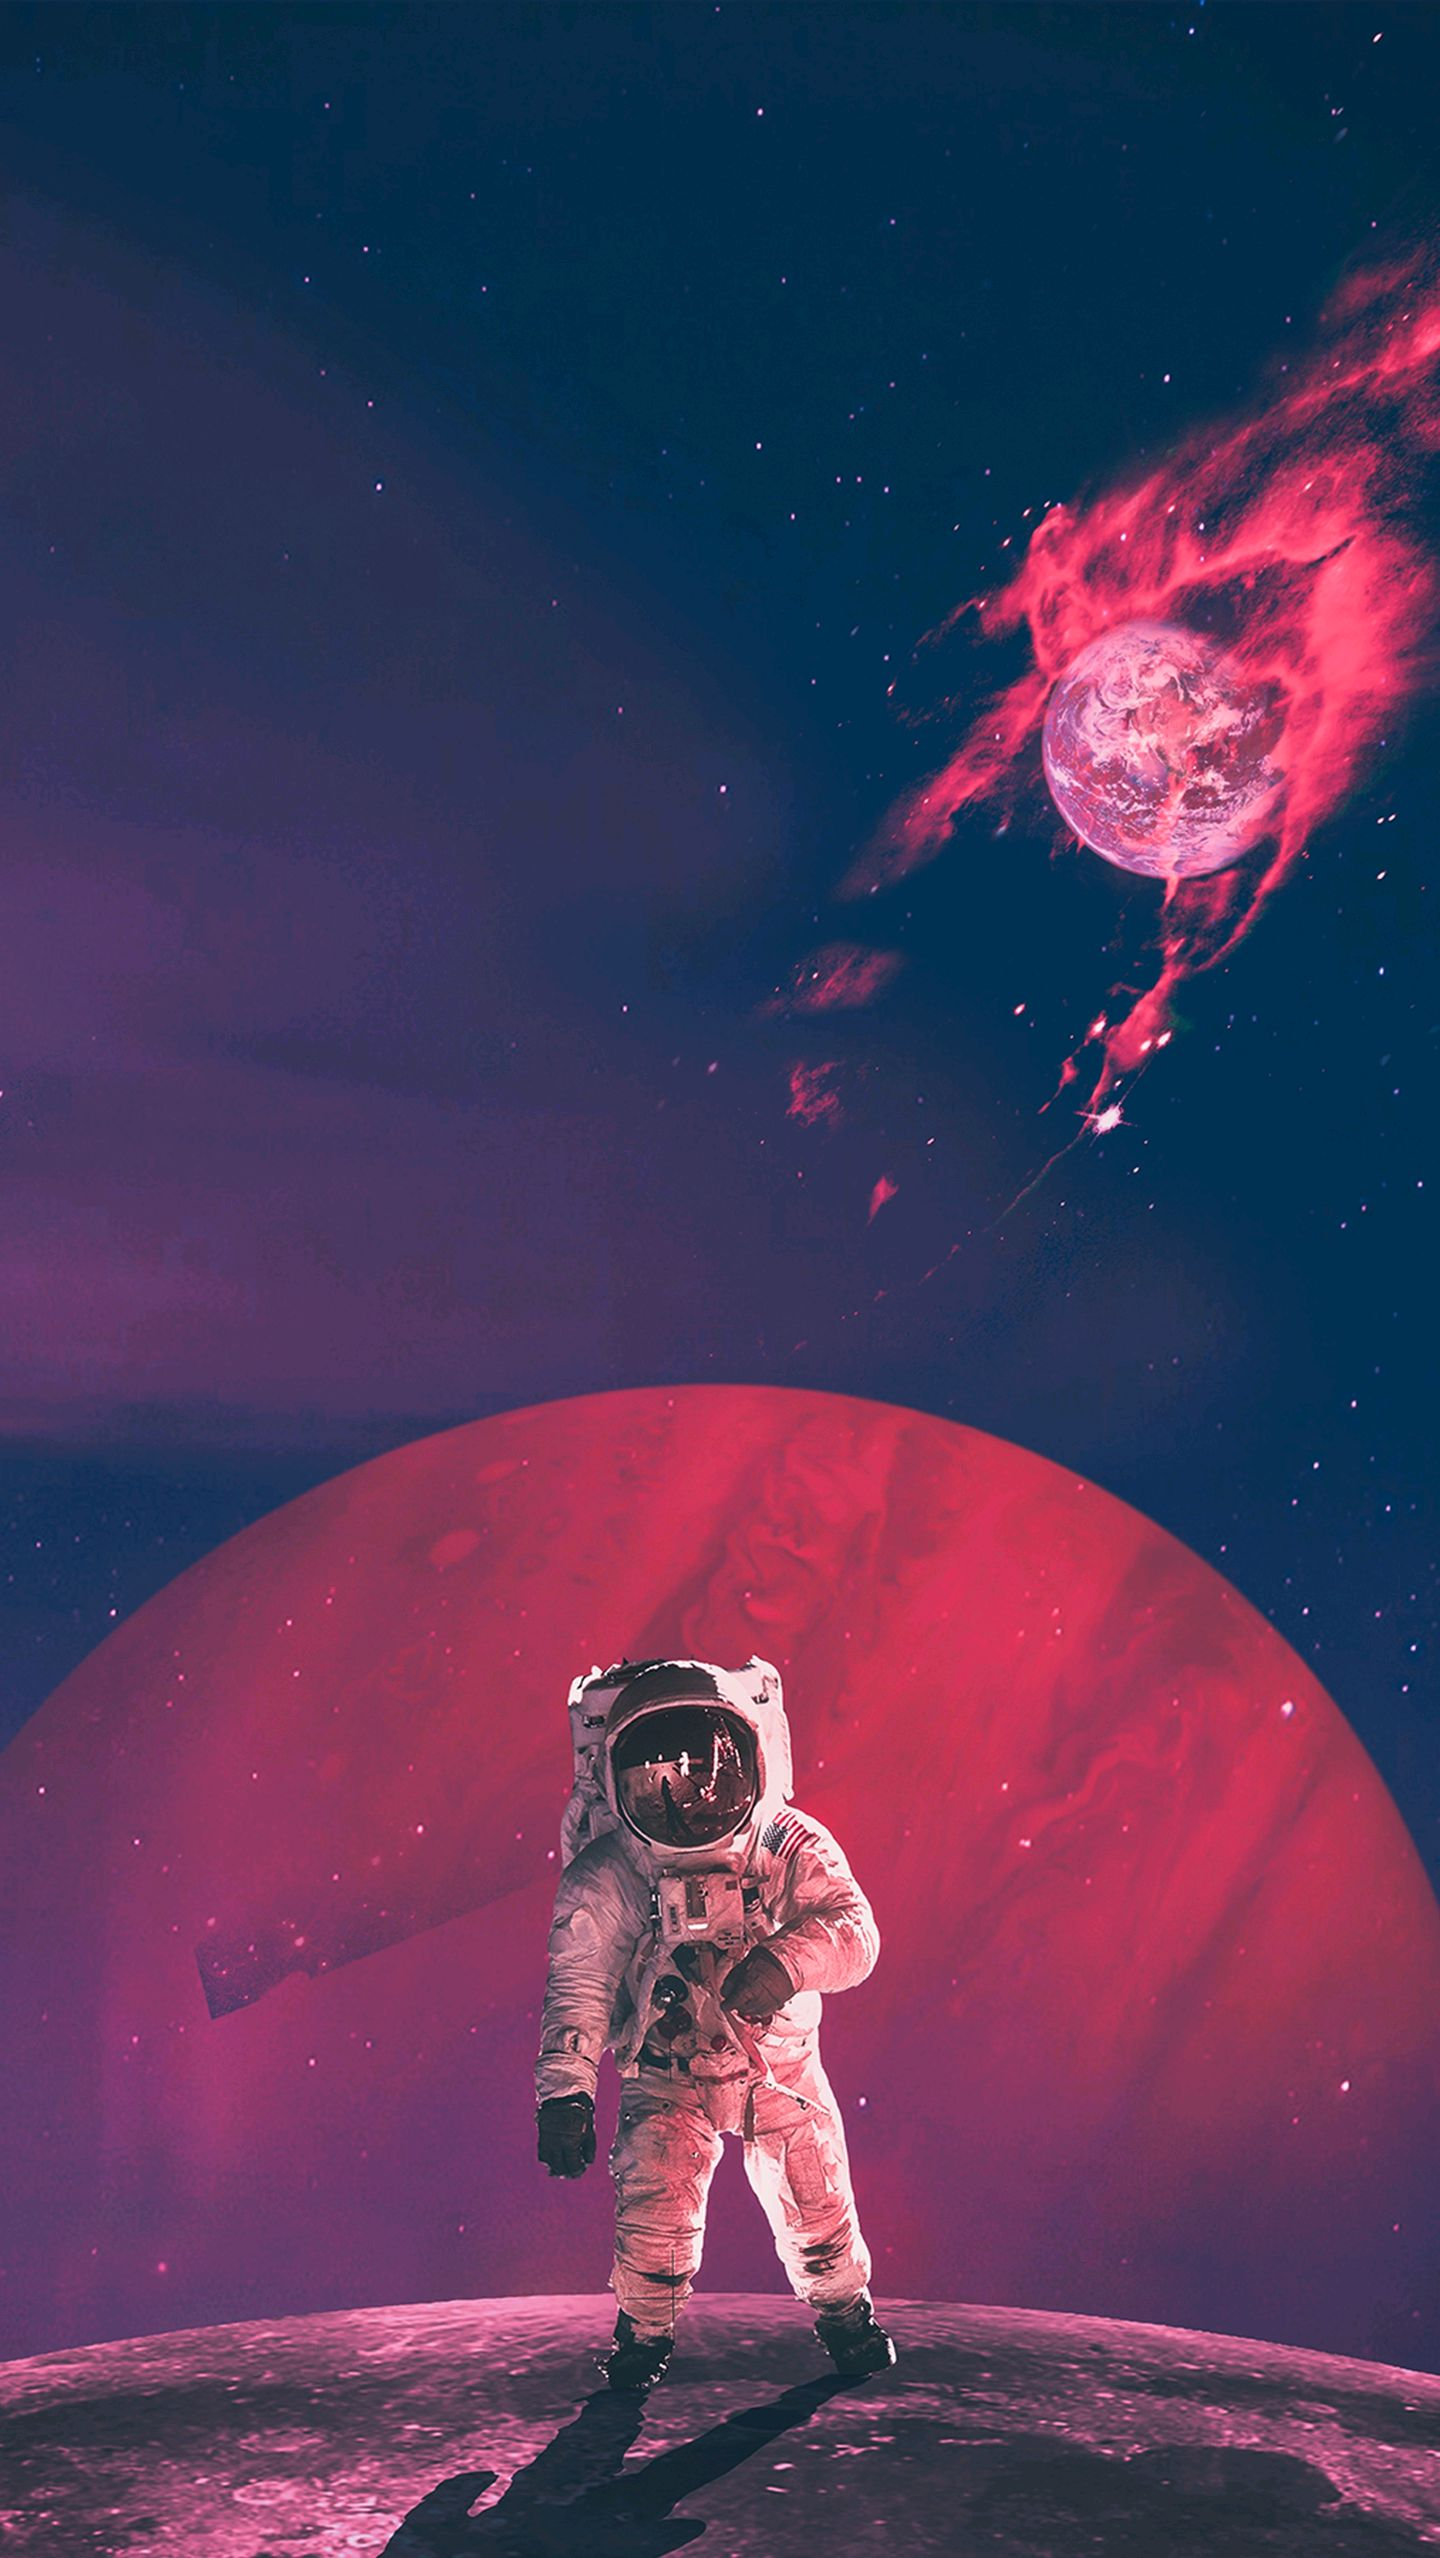 Astronaut-Artwork-Burning-Earth-iPhone-Wallpaper - iPhone ... | 1440 x 2558 jpeg 270kB